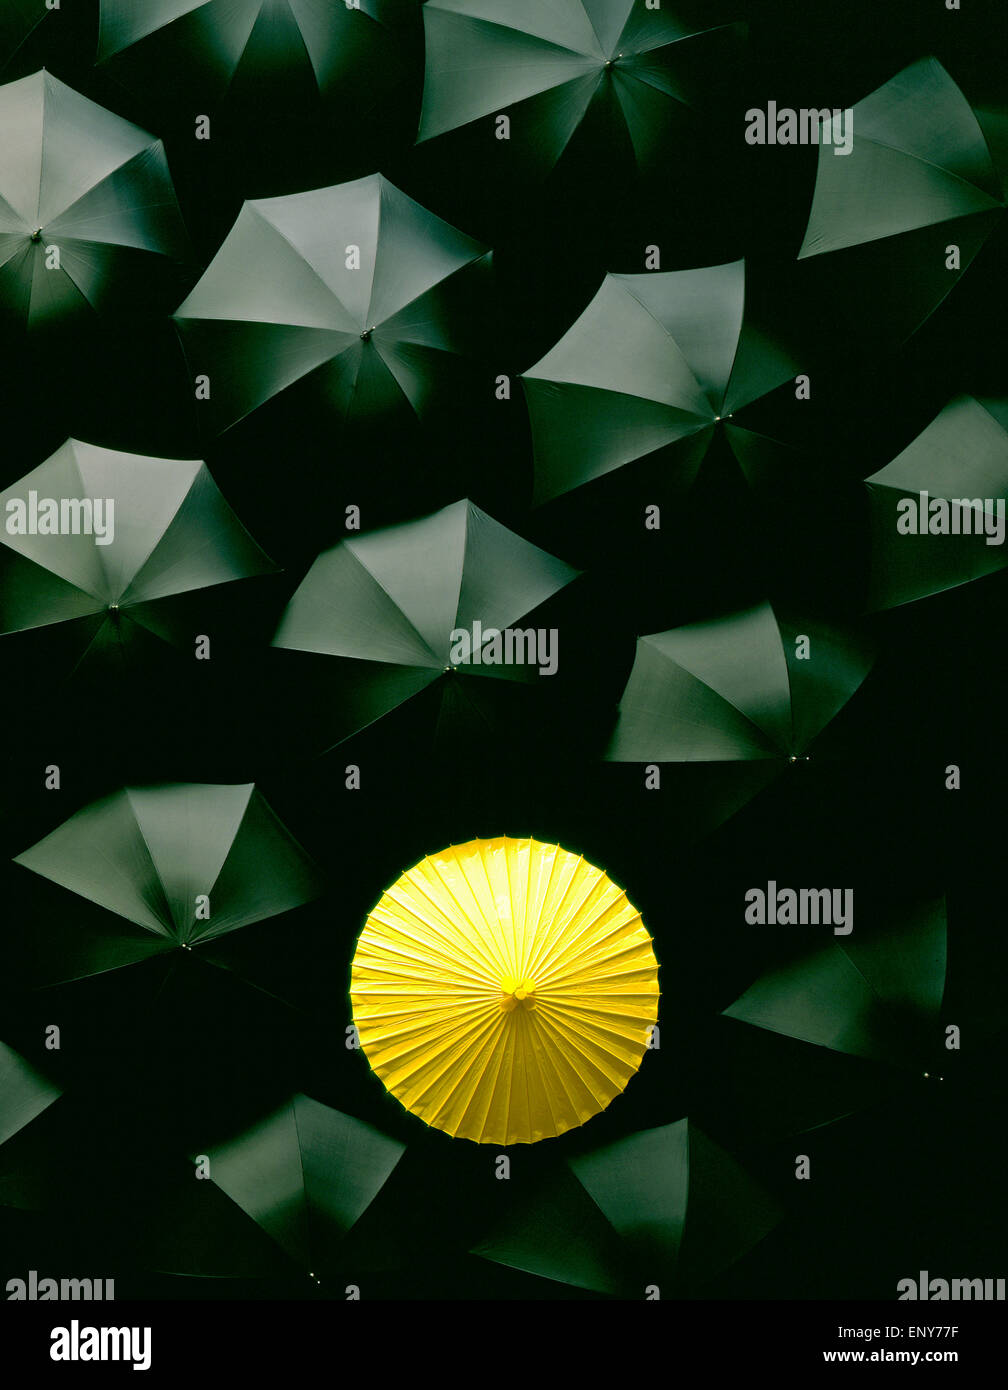 Umbrellas Many black umbrellas and one Yellow umbrella Japanese Chinese Asia - Stock Image